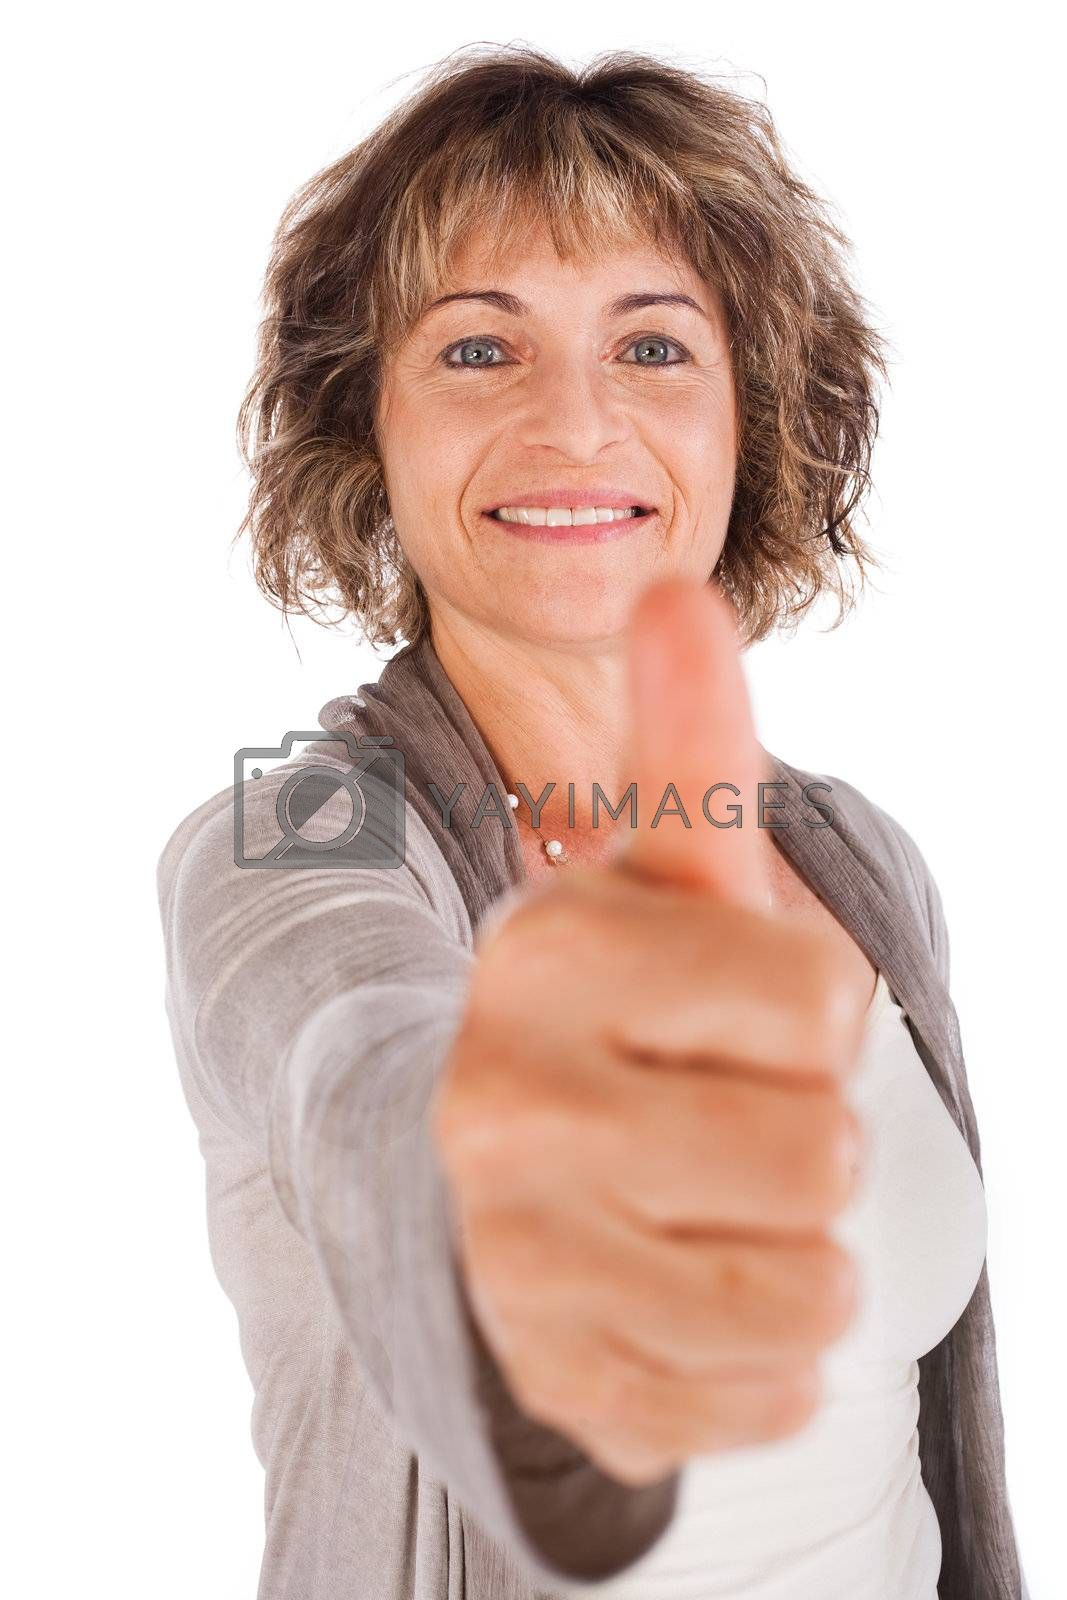 Confident senior woman gesturing thumbs-up isolated over white.